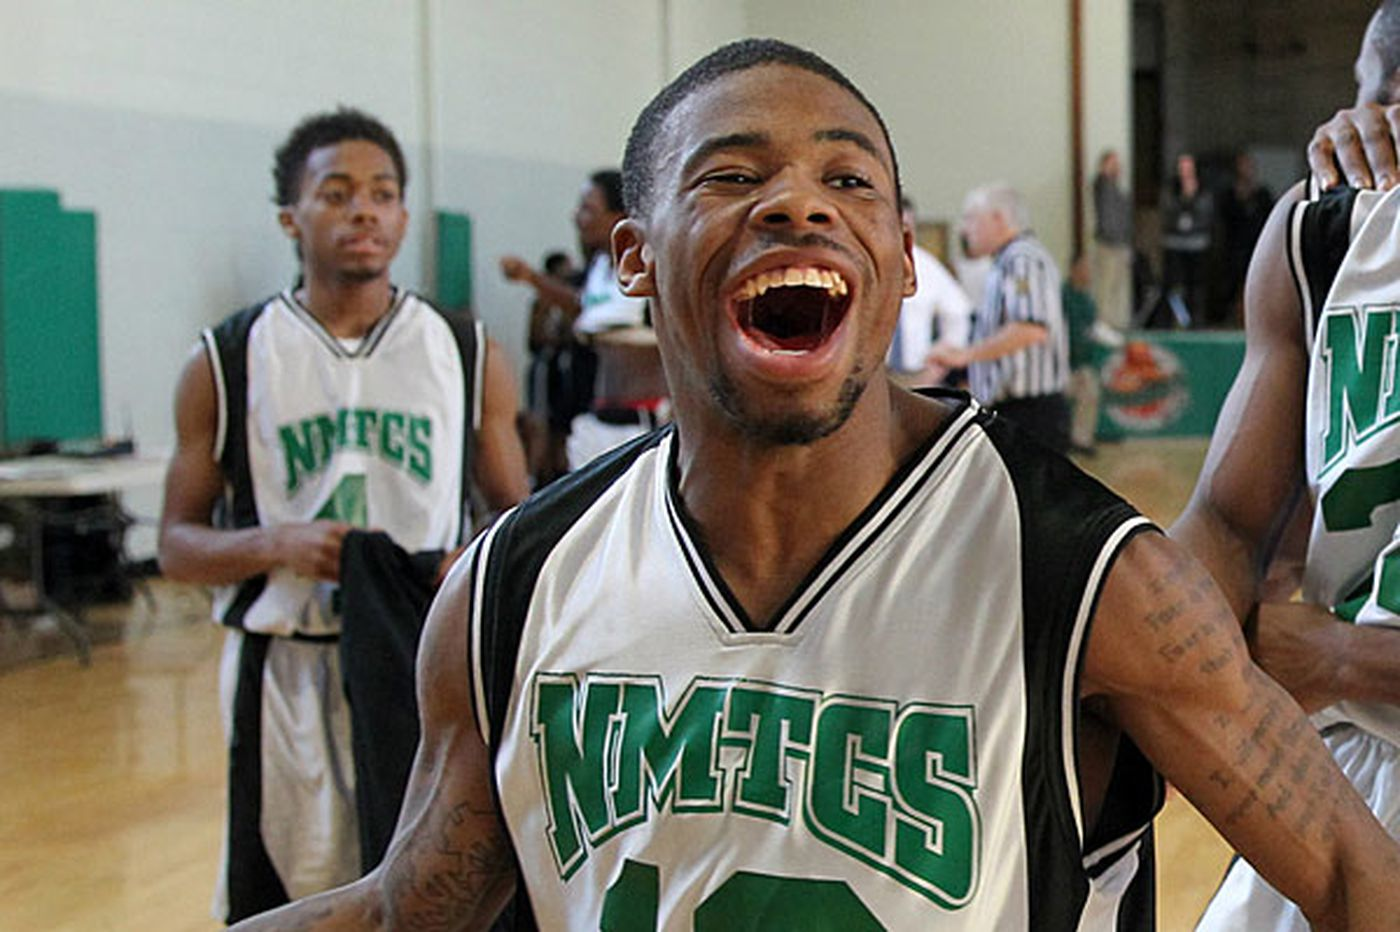 Wounded high school hoops star dies